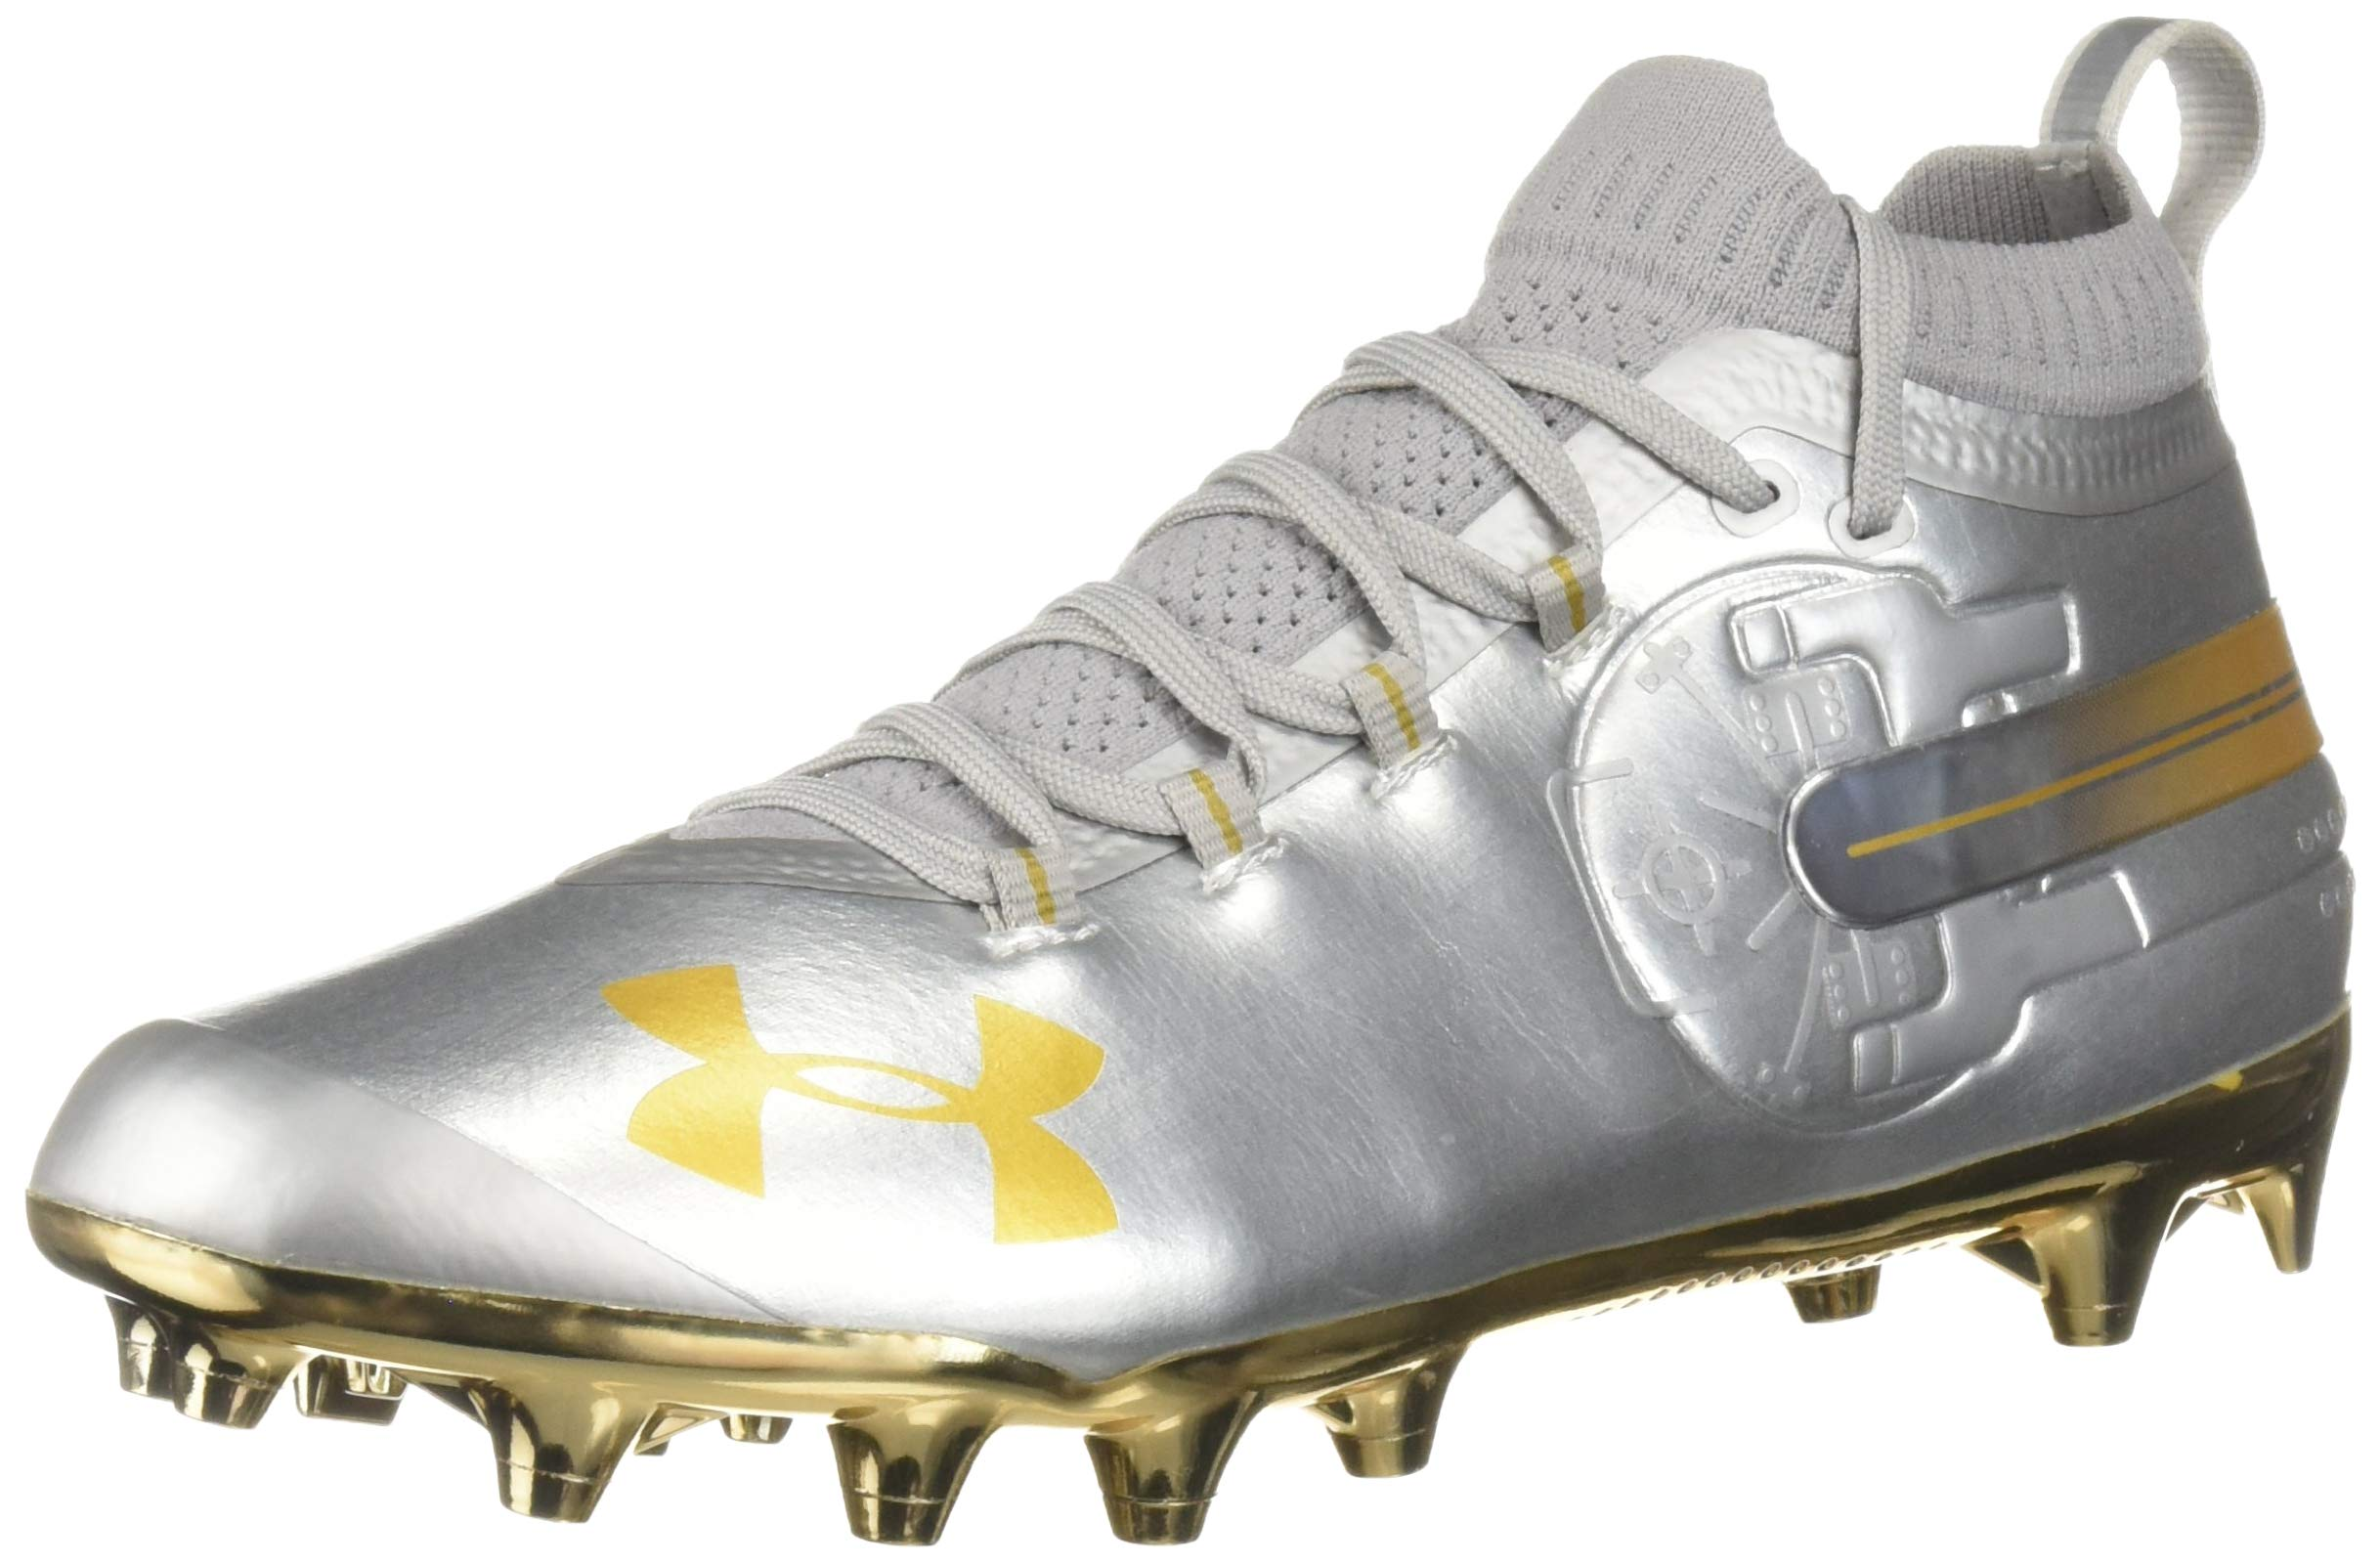 Under Armour Men's Spotlight-Limited Edition Football Shoe, Silver (100)/Metallic Gold, 8